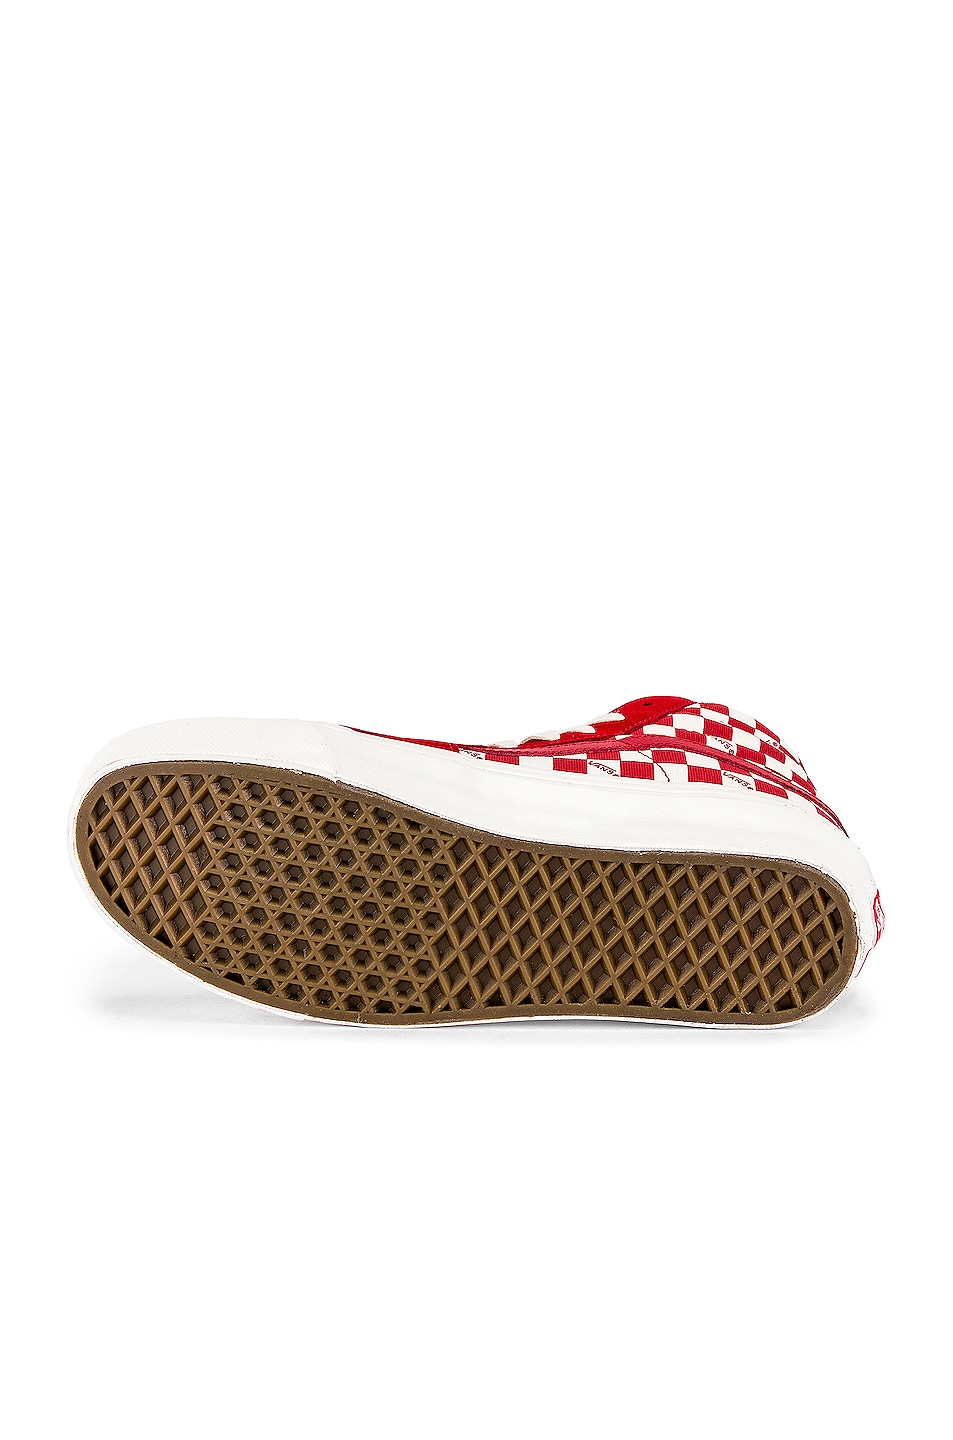 Image 6 of Vans Vault OG Style 138 LX in Racing Red & Checkerboard